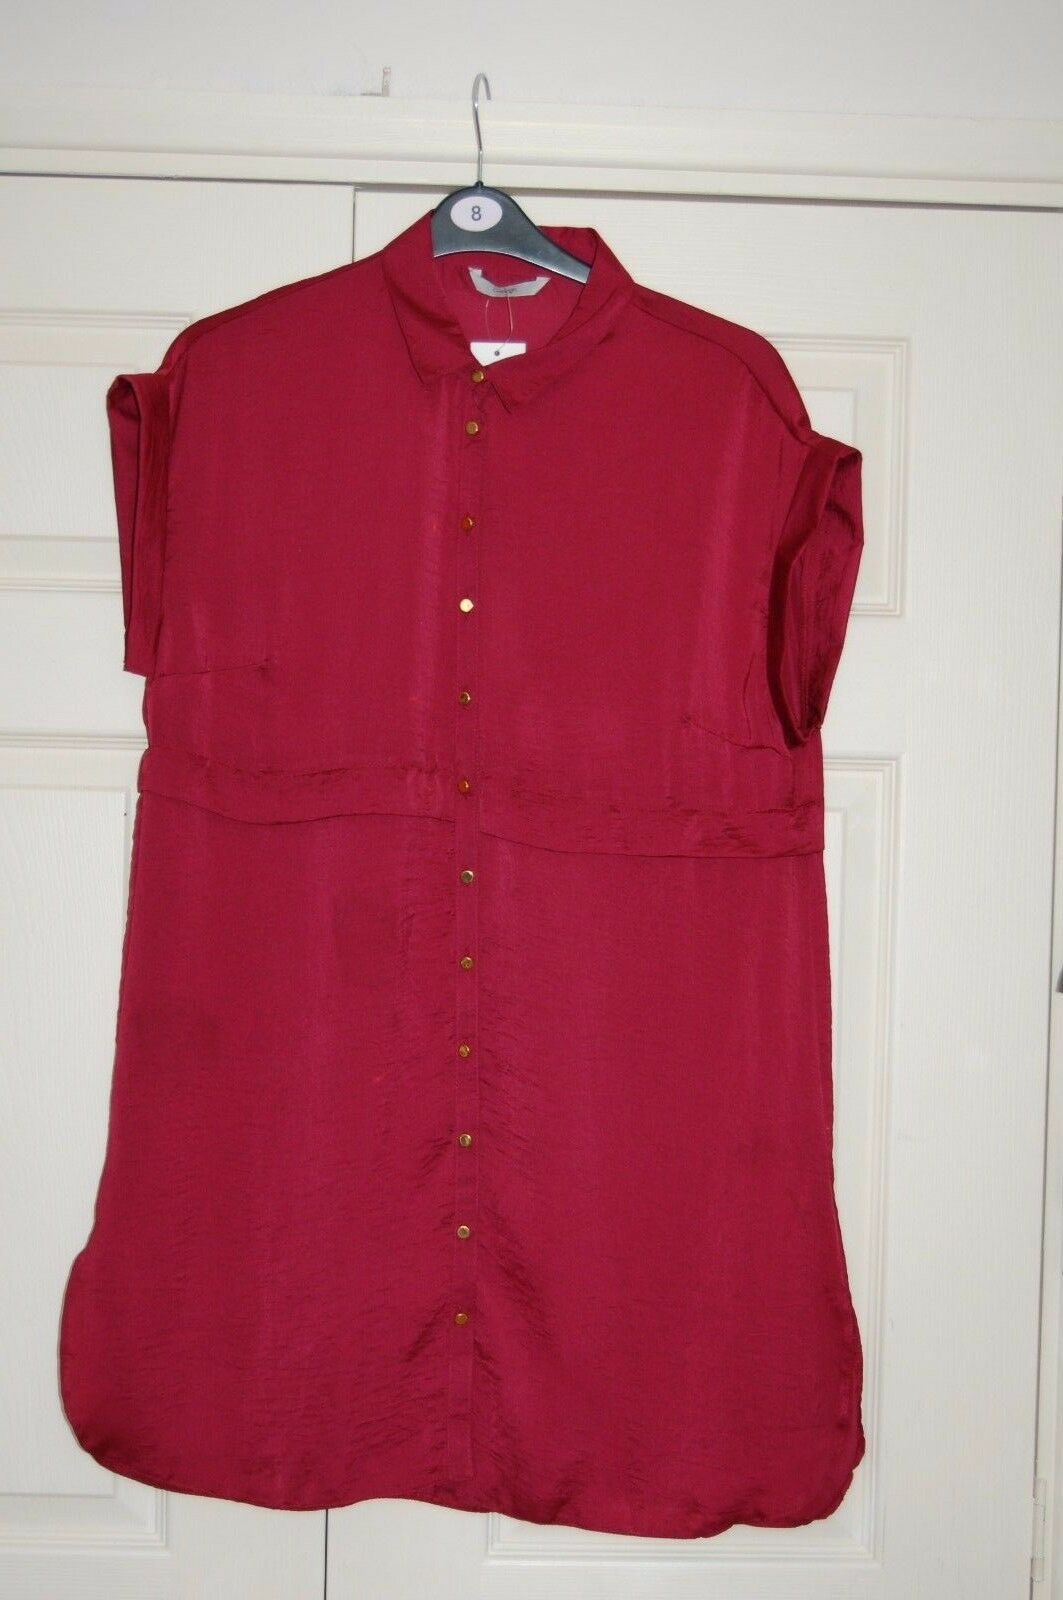 New Sz 16 Long line Sleeveless Shirt in Shiny Maroon hammered Material Faux Belt